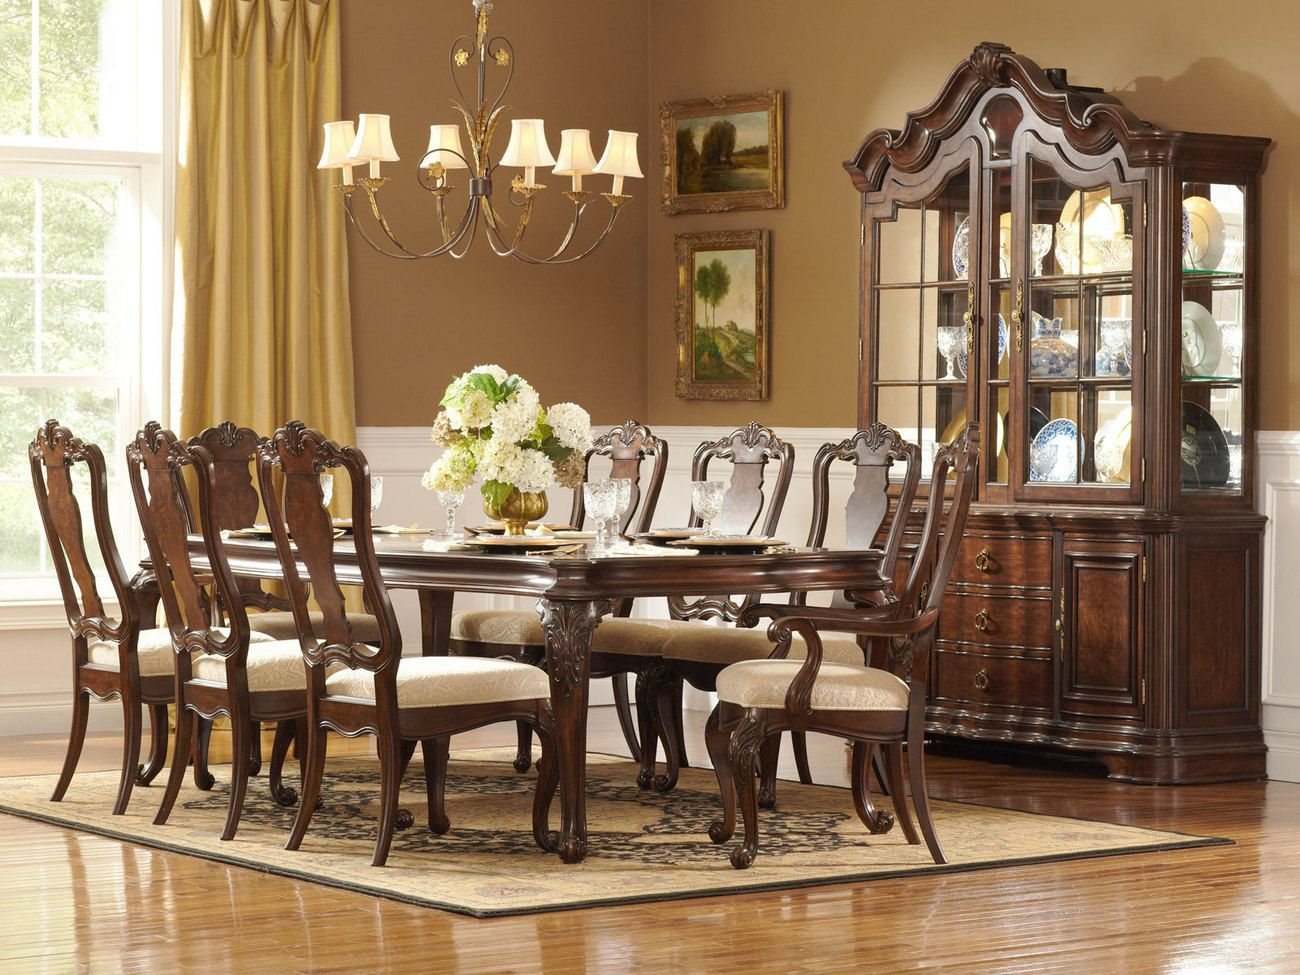 Designer Tische Esszimmer With Dining Room Sets Small Traditional Dining Room